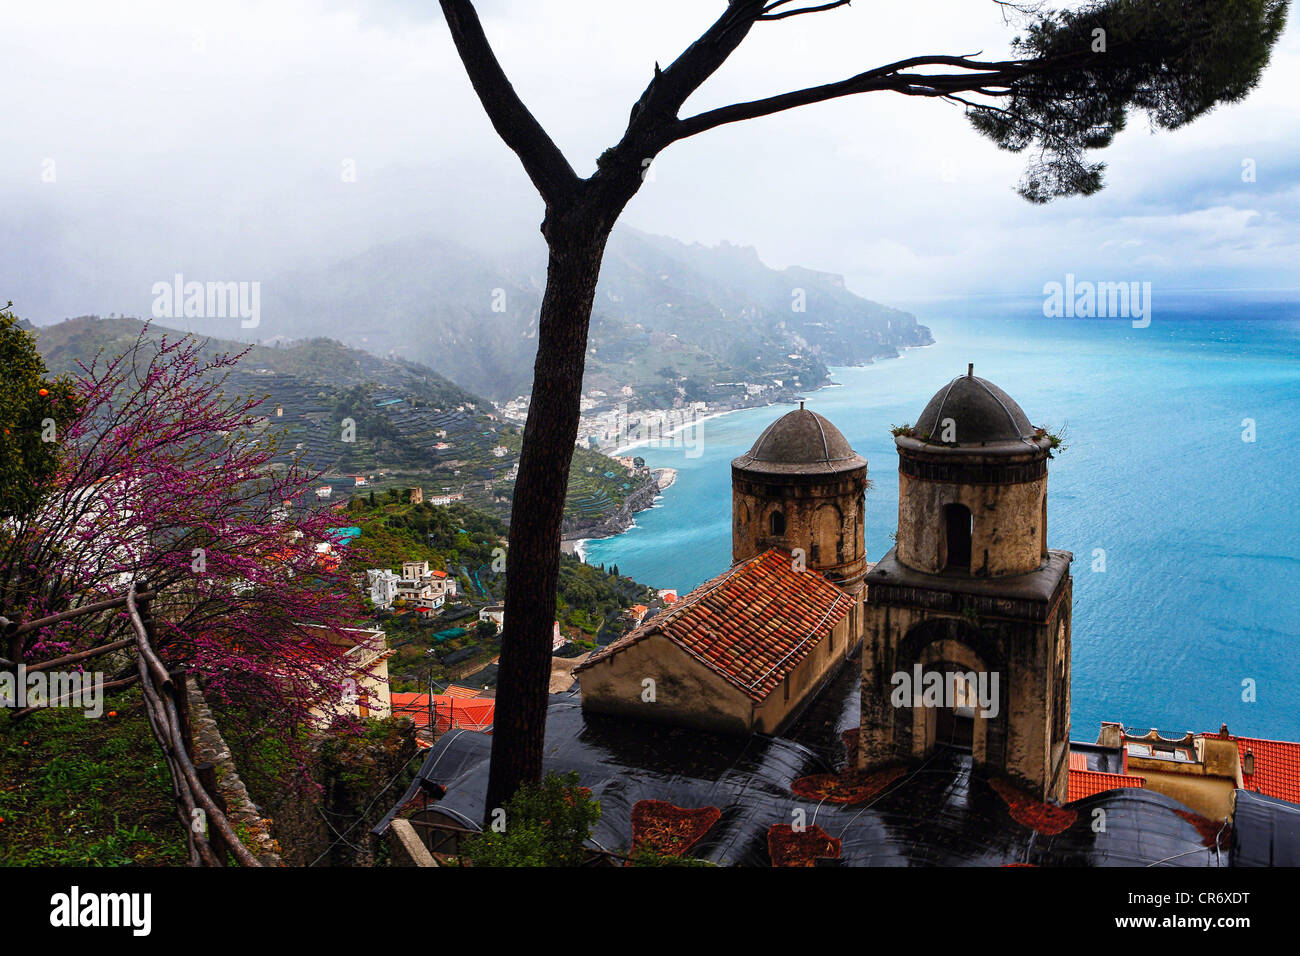 High Angle View of the the Amalfi Coast from Villa Rufulo, Ravello, Campania, Italy - Stock Image